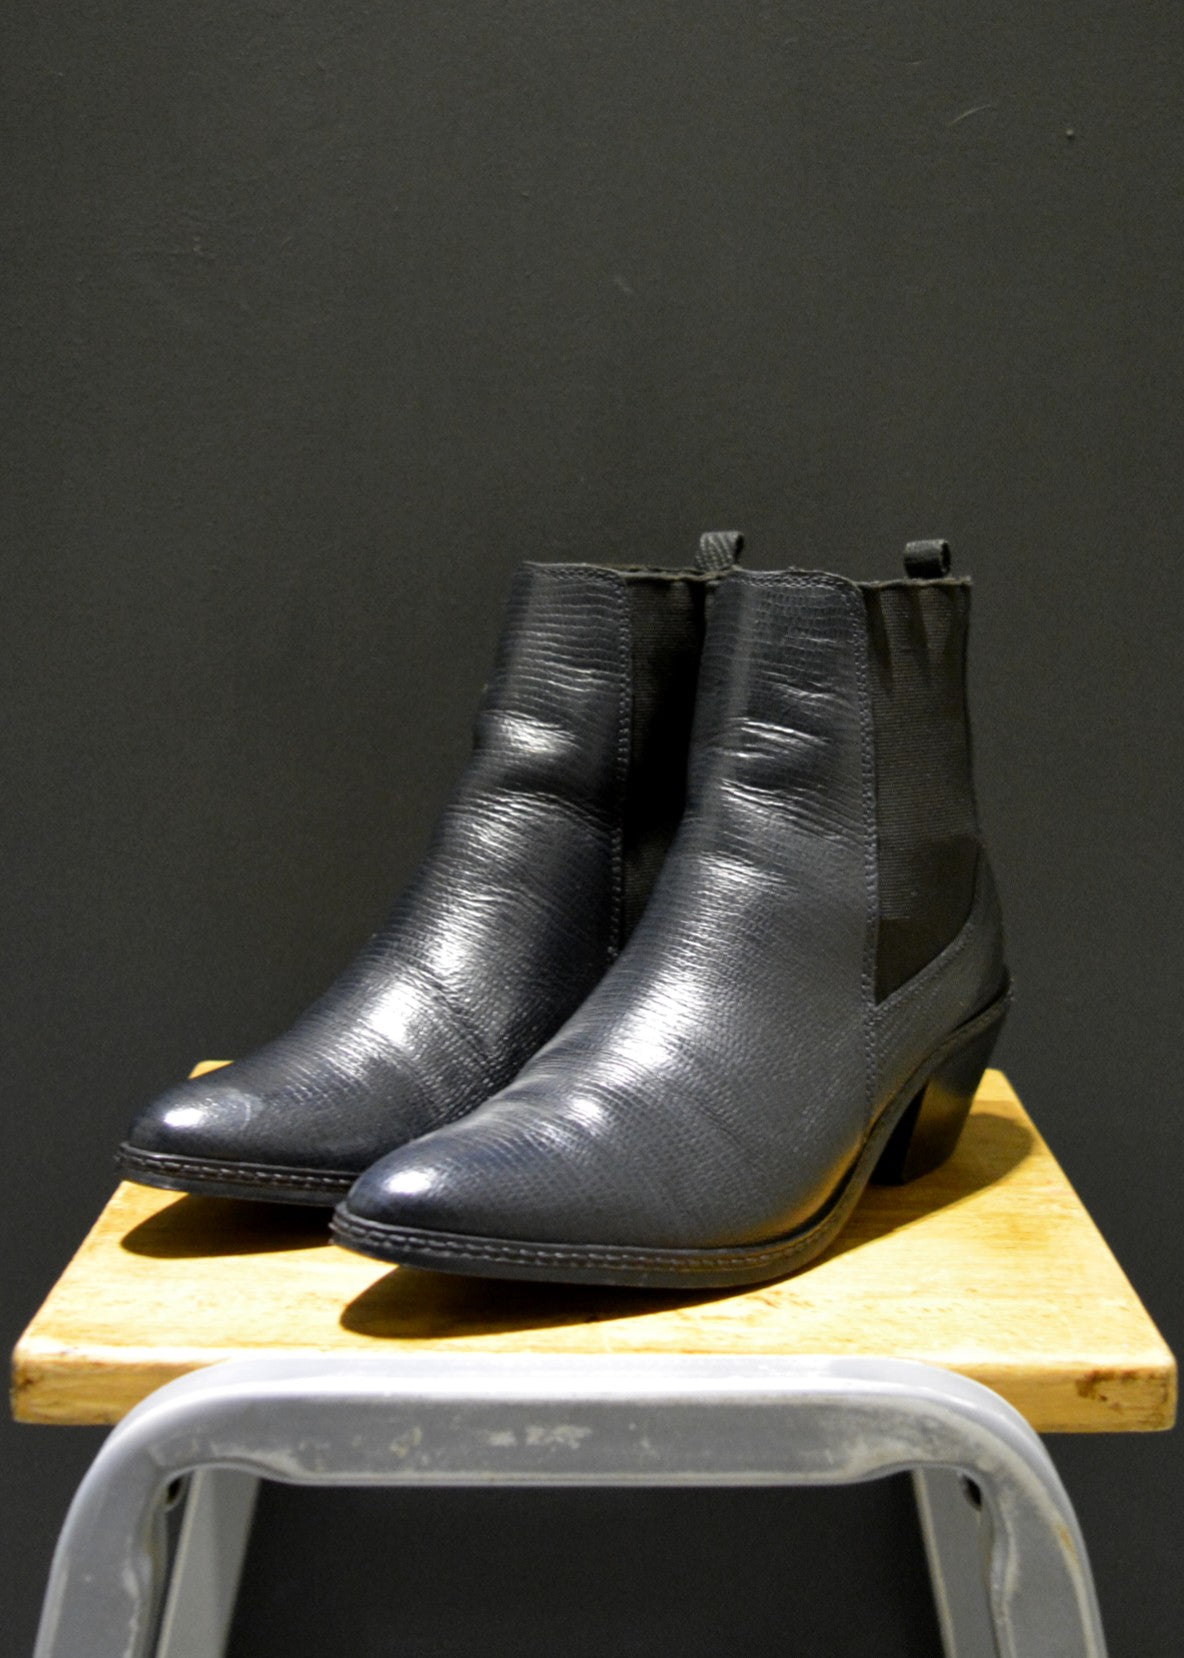 Preworn | Preloved - 'HUDSON' Rock Chic Chelsea  Boot - Size 6.5 UK